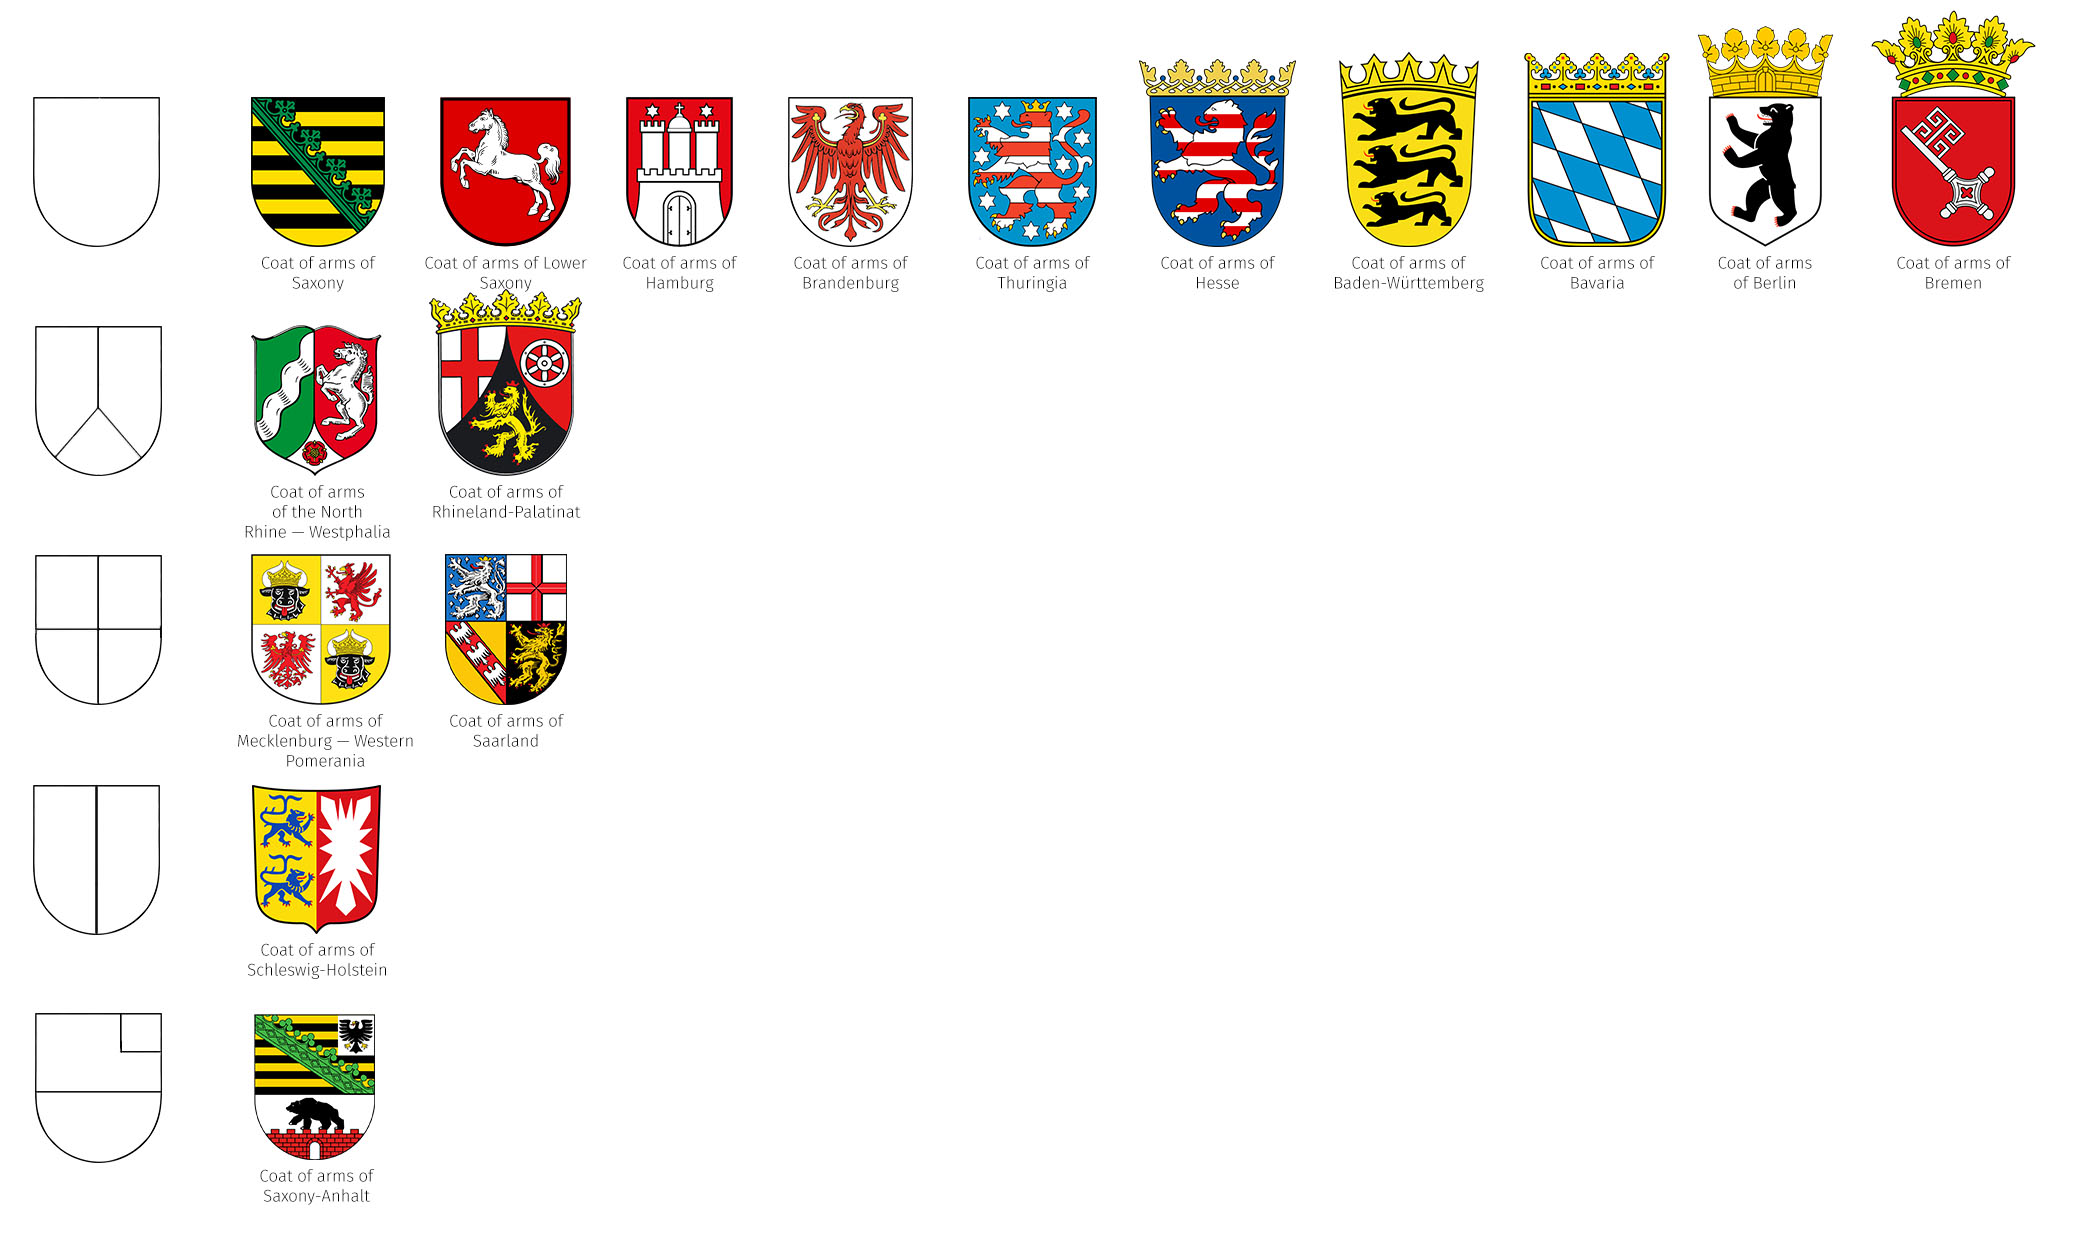 Heraldry of german states the dialogue coat of arms of germany based on their structure buycottarizona Image collections